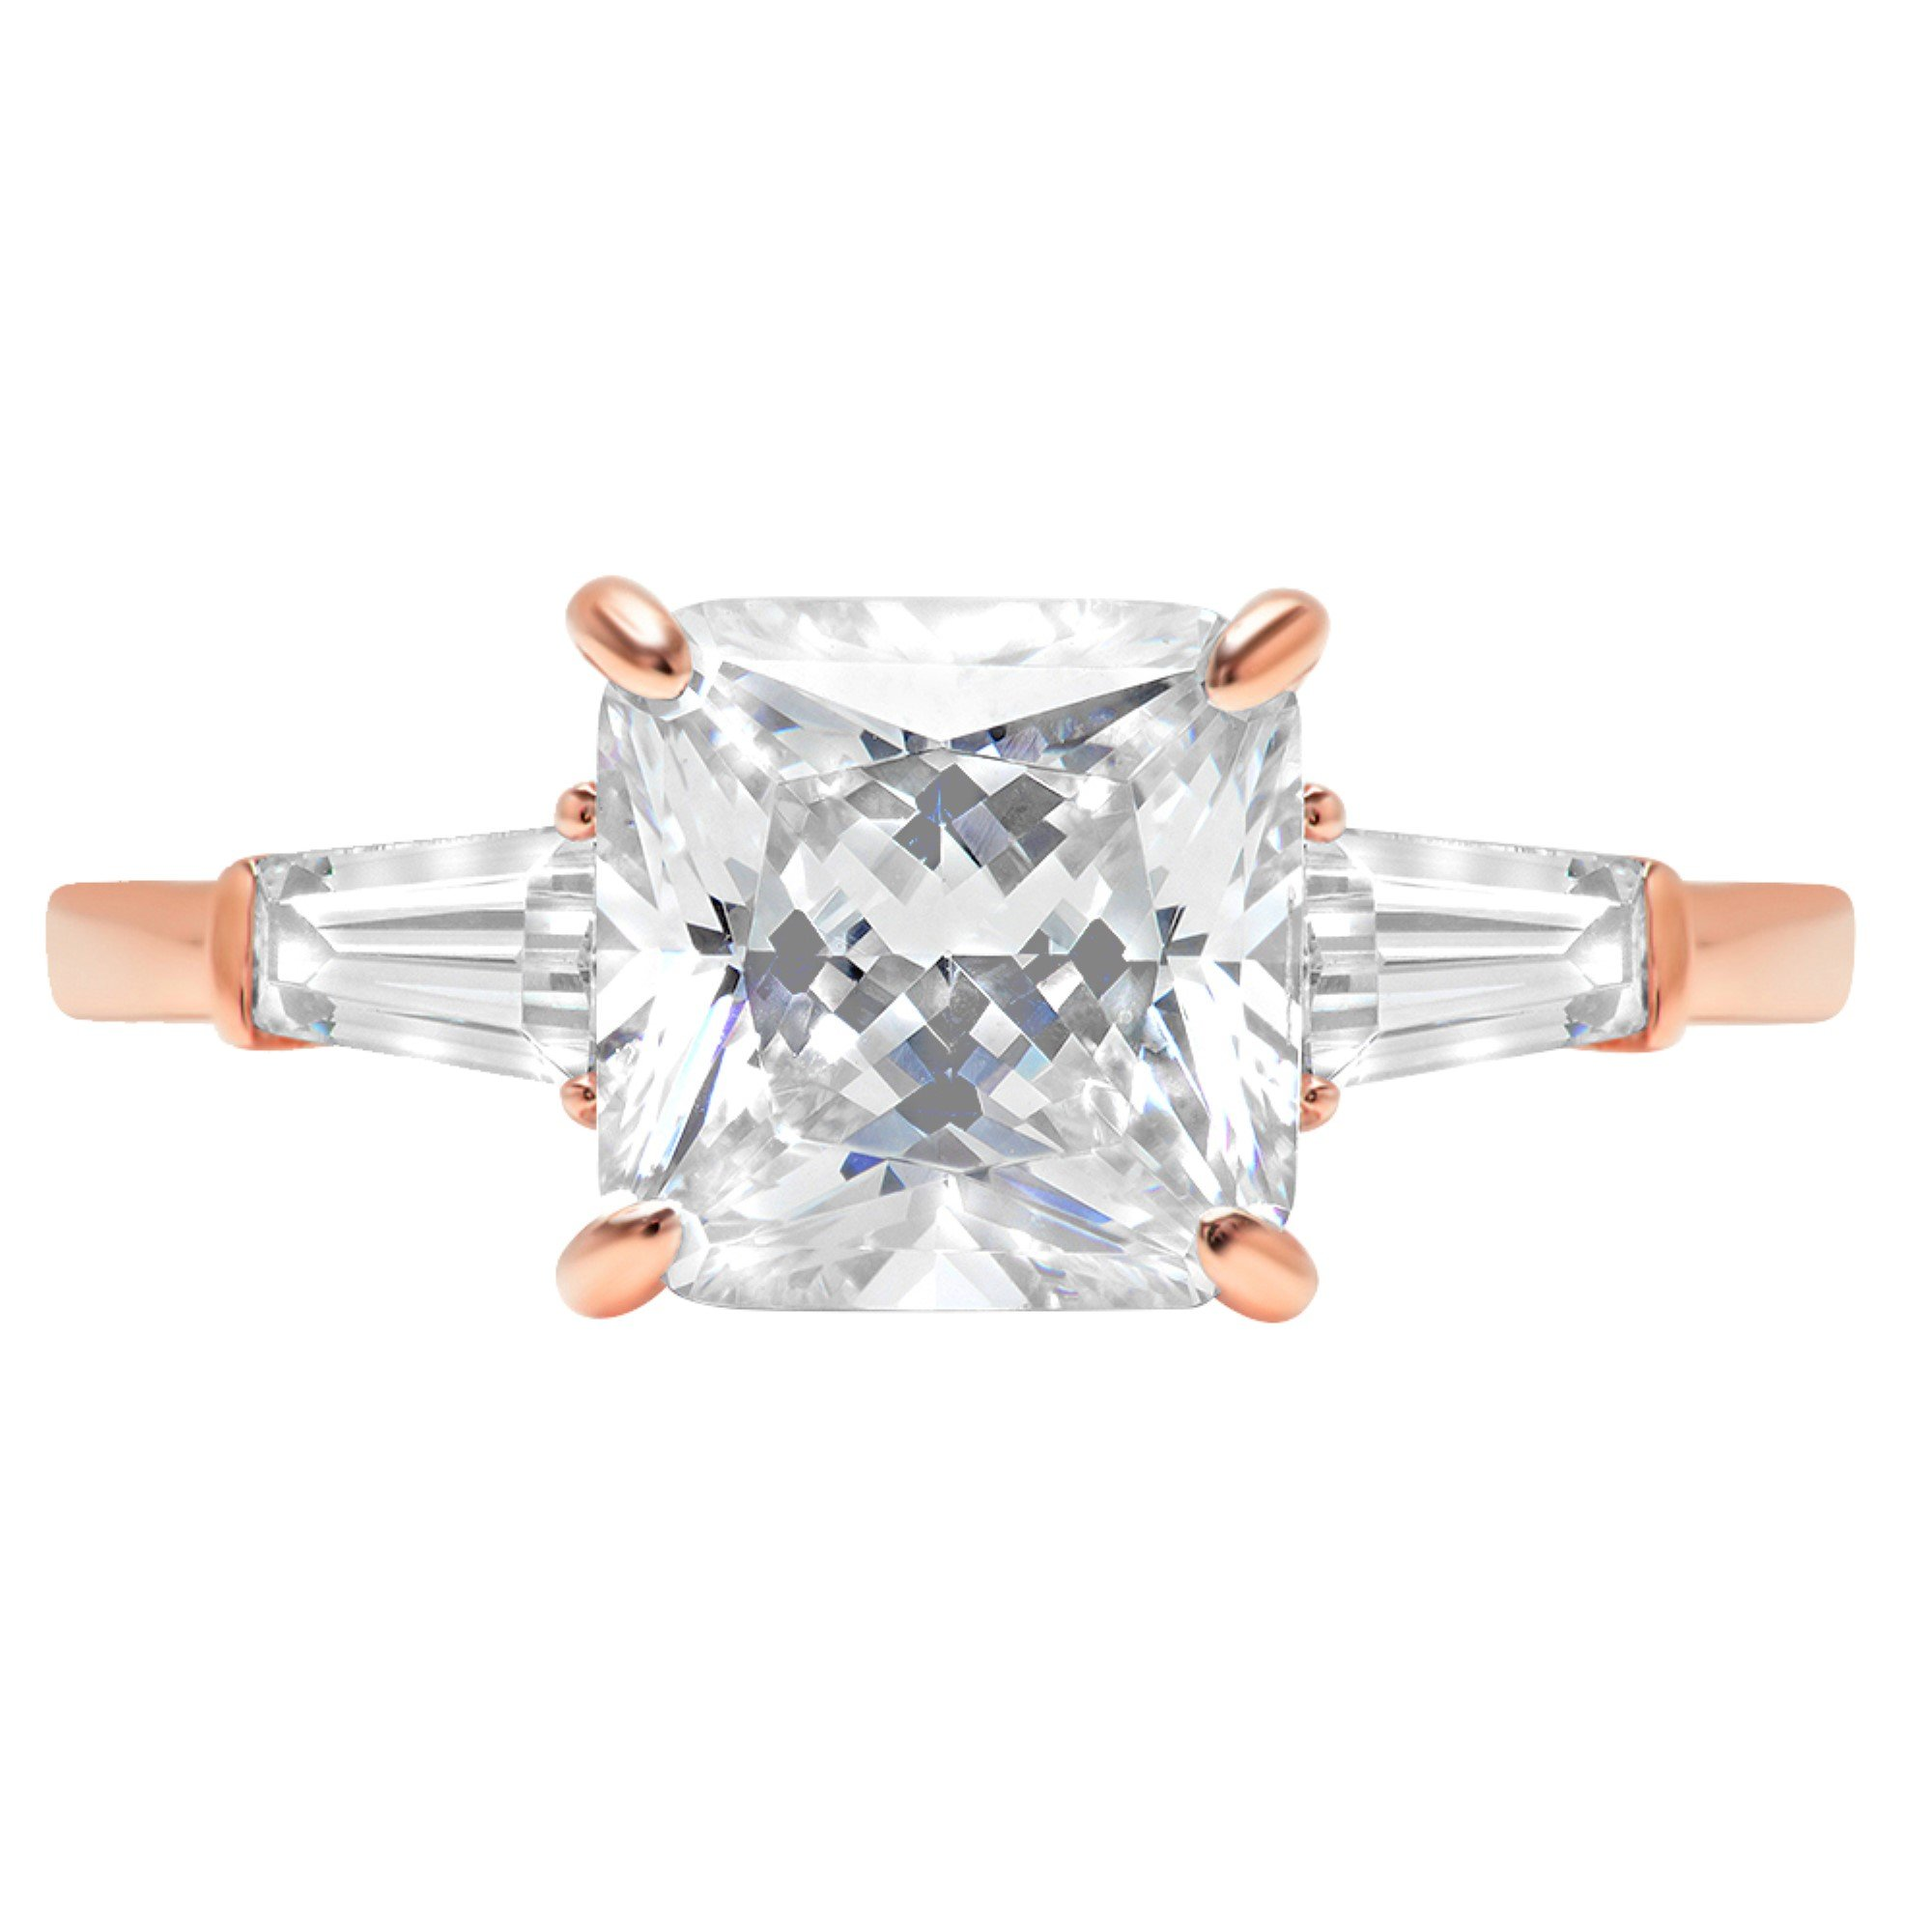 14k Rose Gold 3.3ct Asscher Baguette 3-Stone Classic Solitaire Designer Wedding Bridal Statement Anniversary Engagement Promise Ring, 11, 11